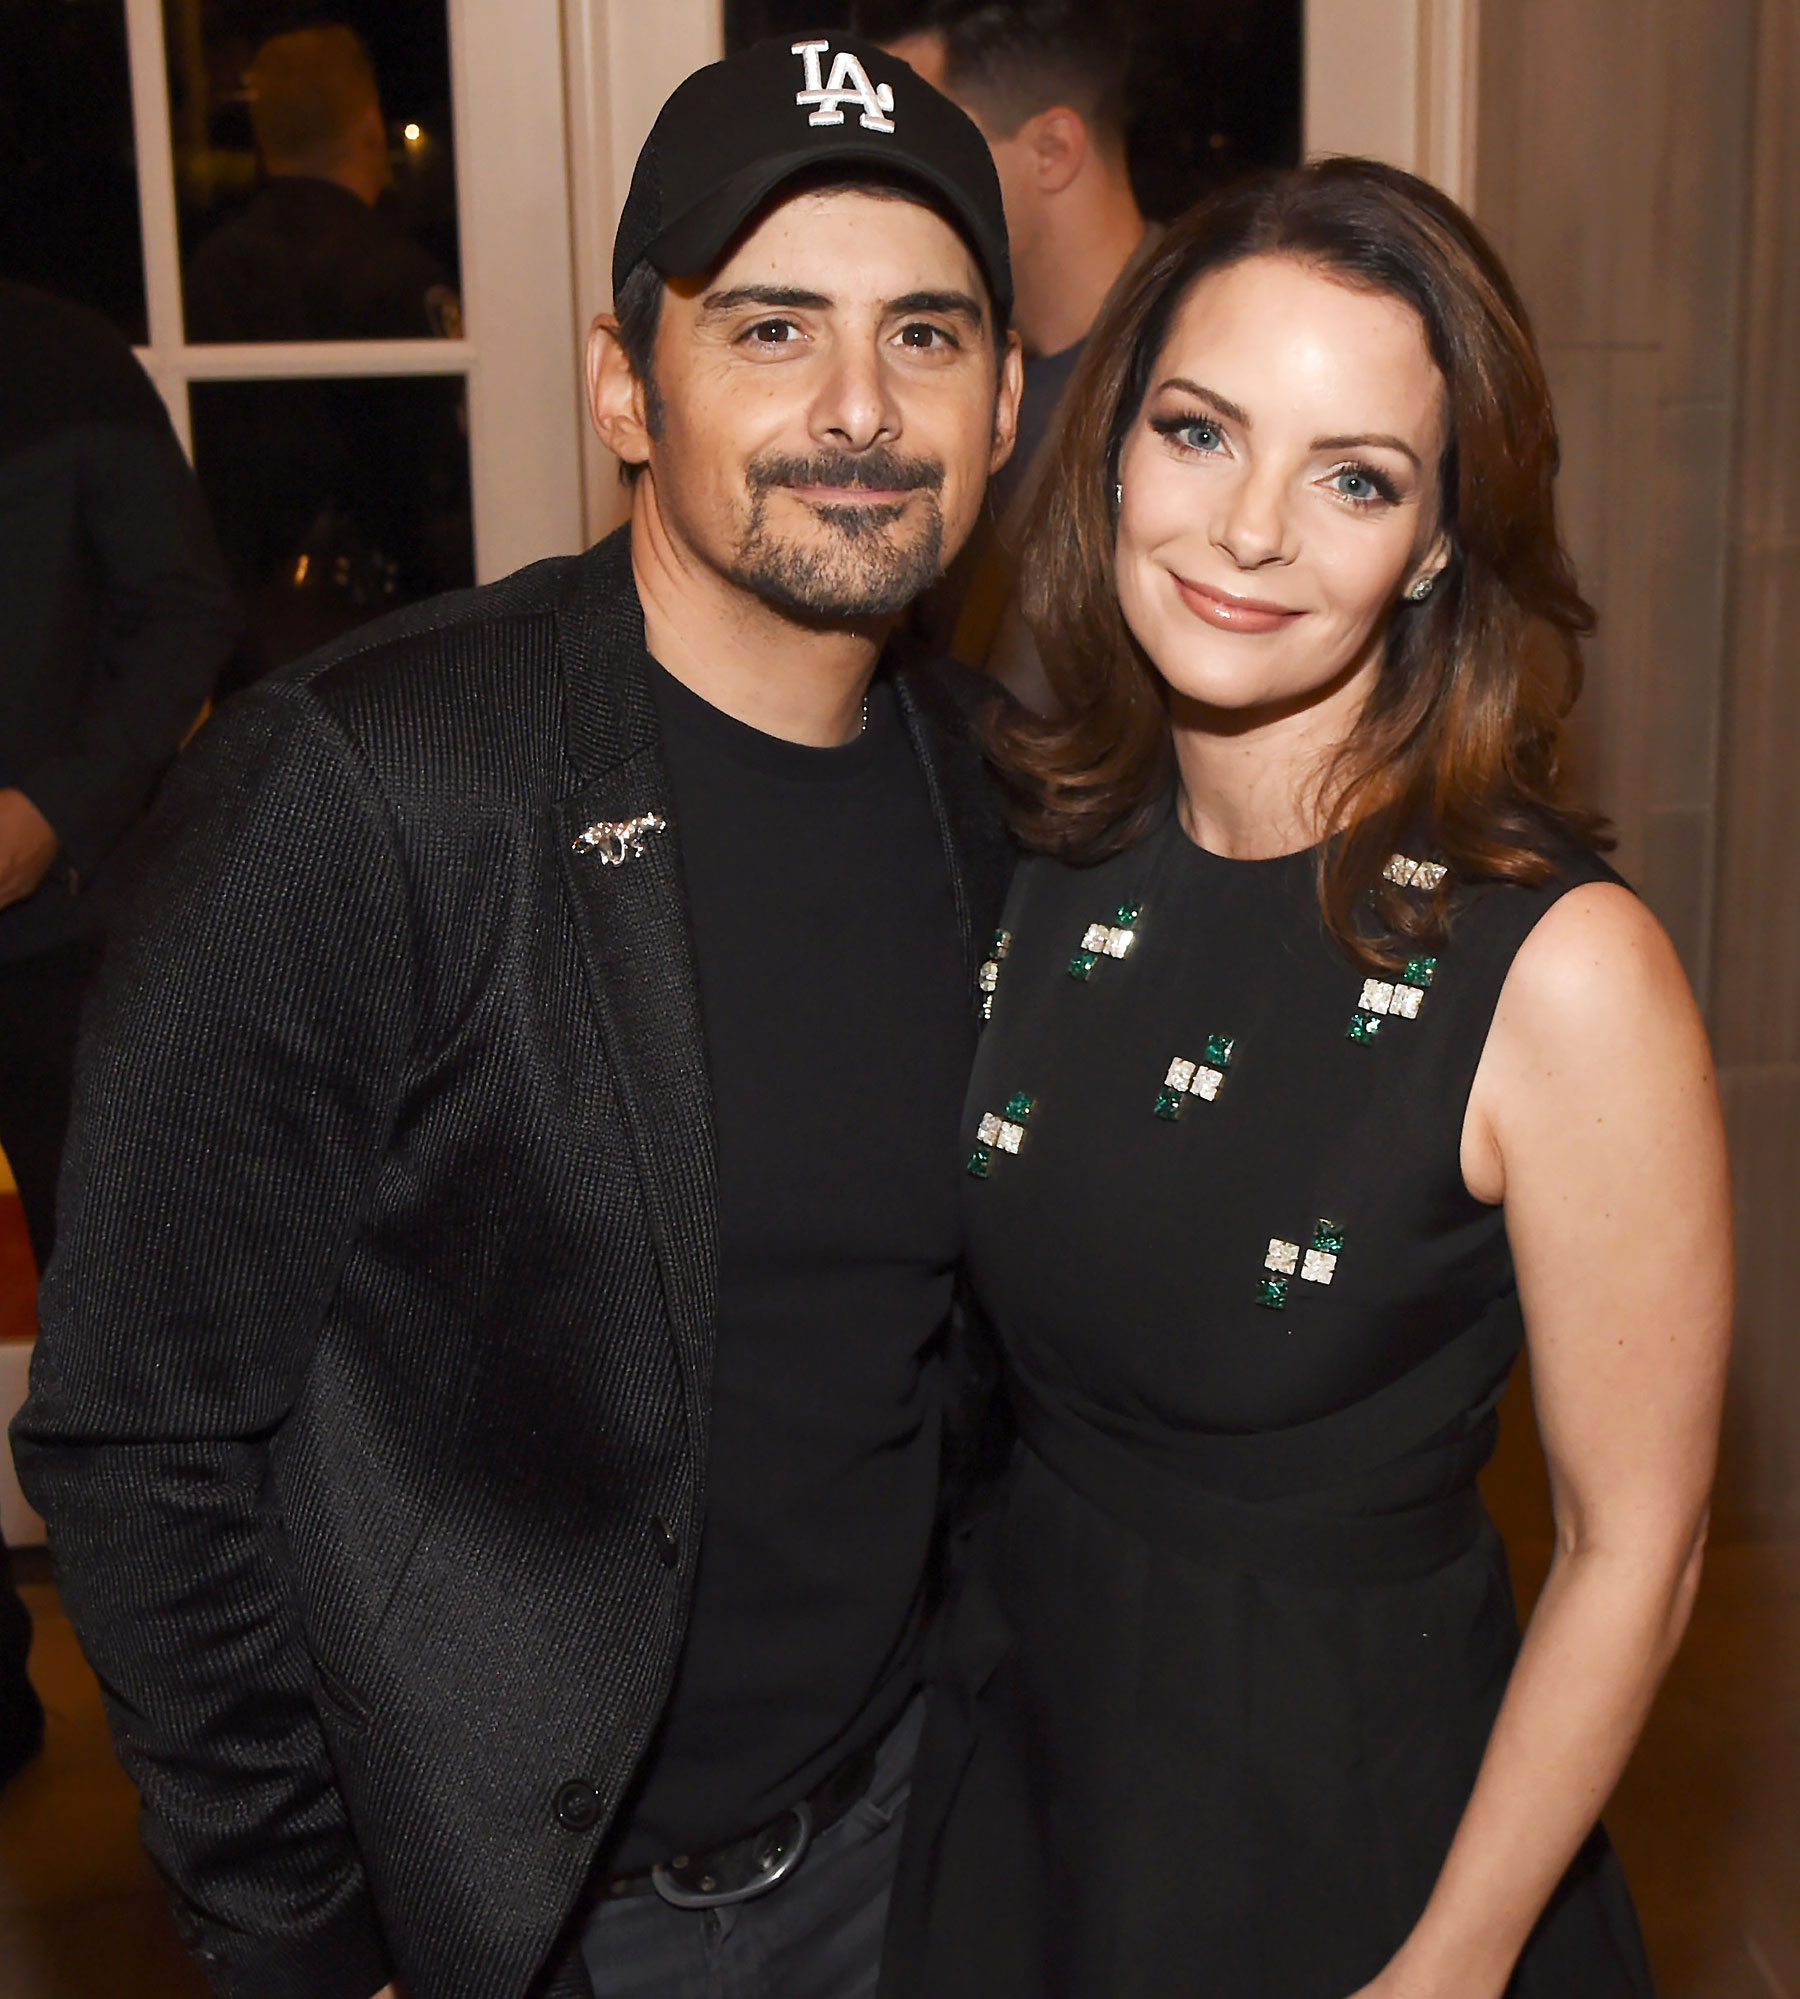 Brad Paisley and His Wife Kimberly Are Opening a Grocery Store Where Everything Is Free